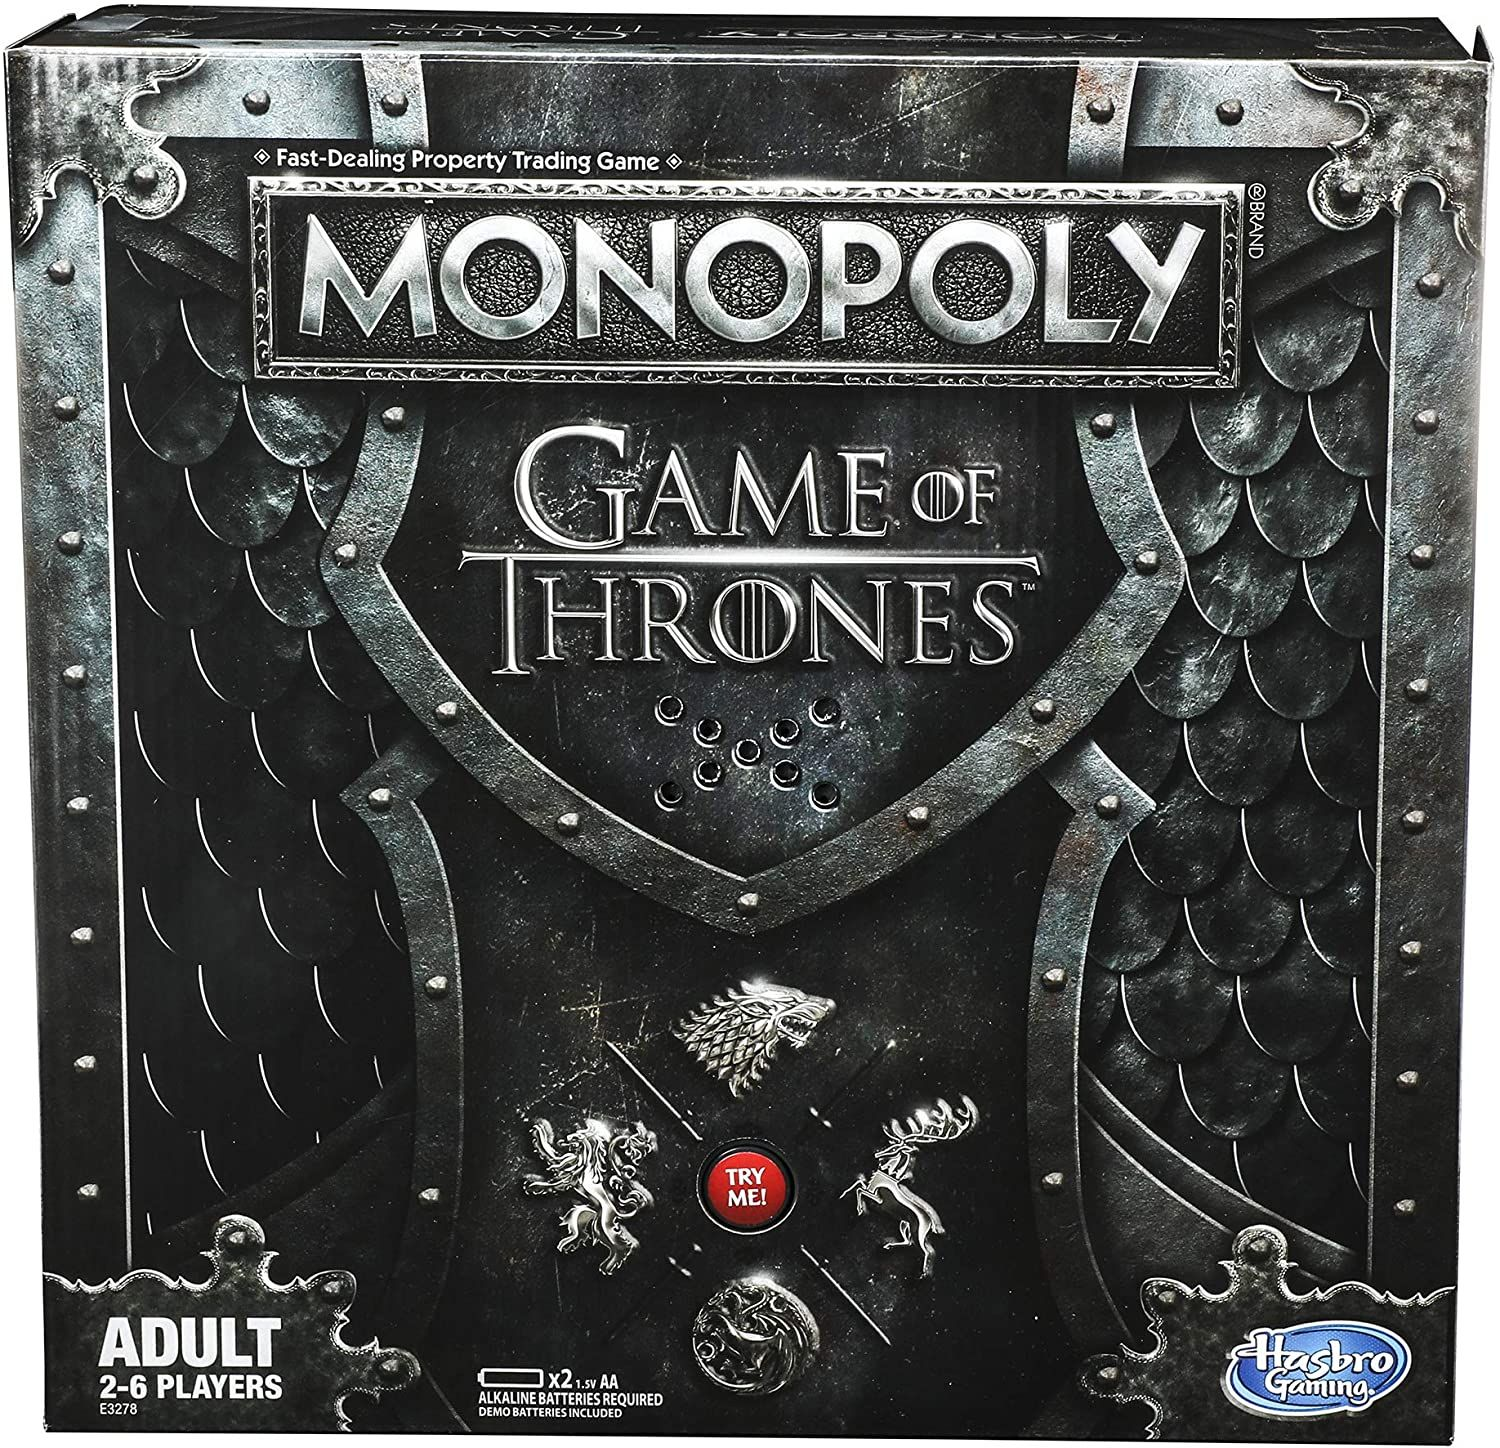 game of thrones gifts-3.jpg